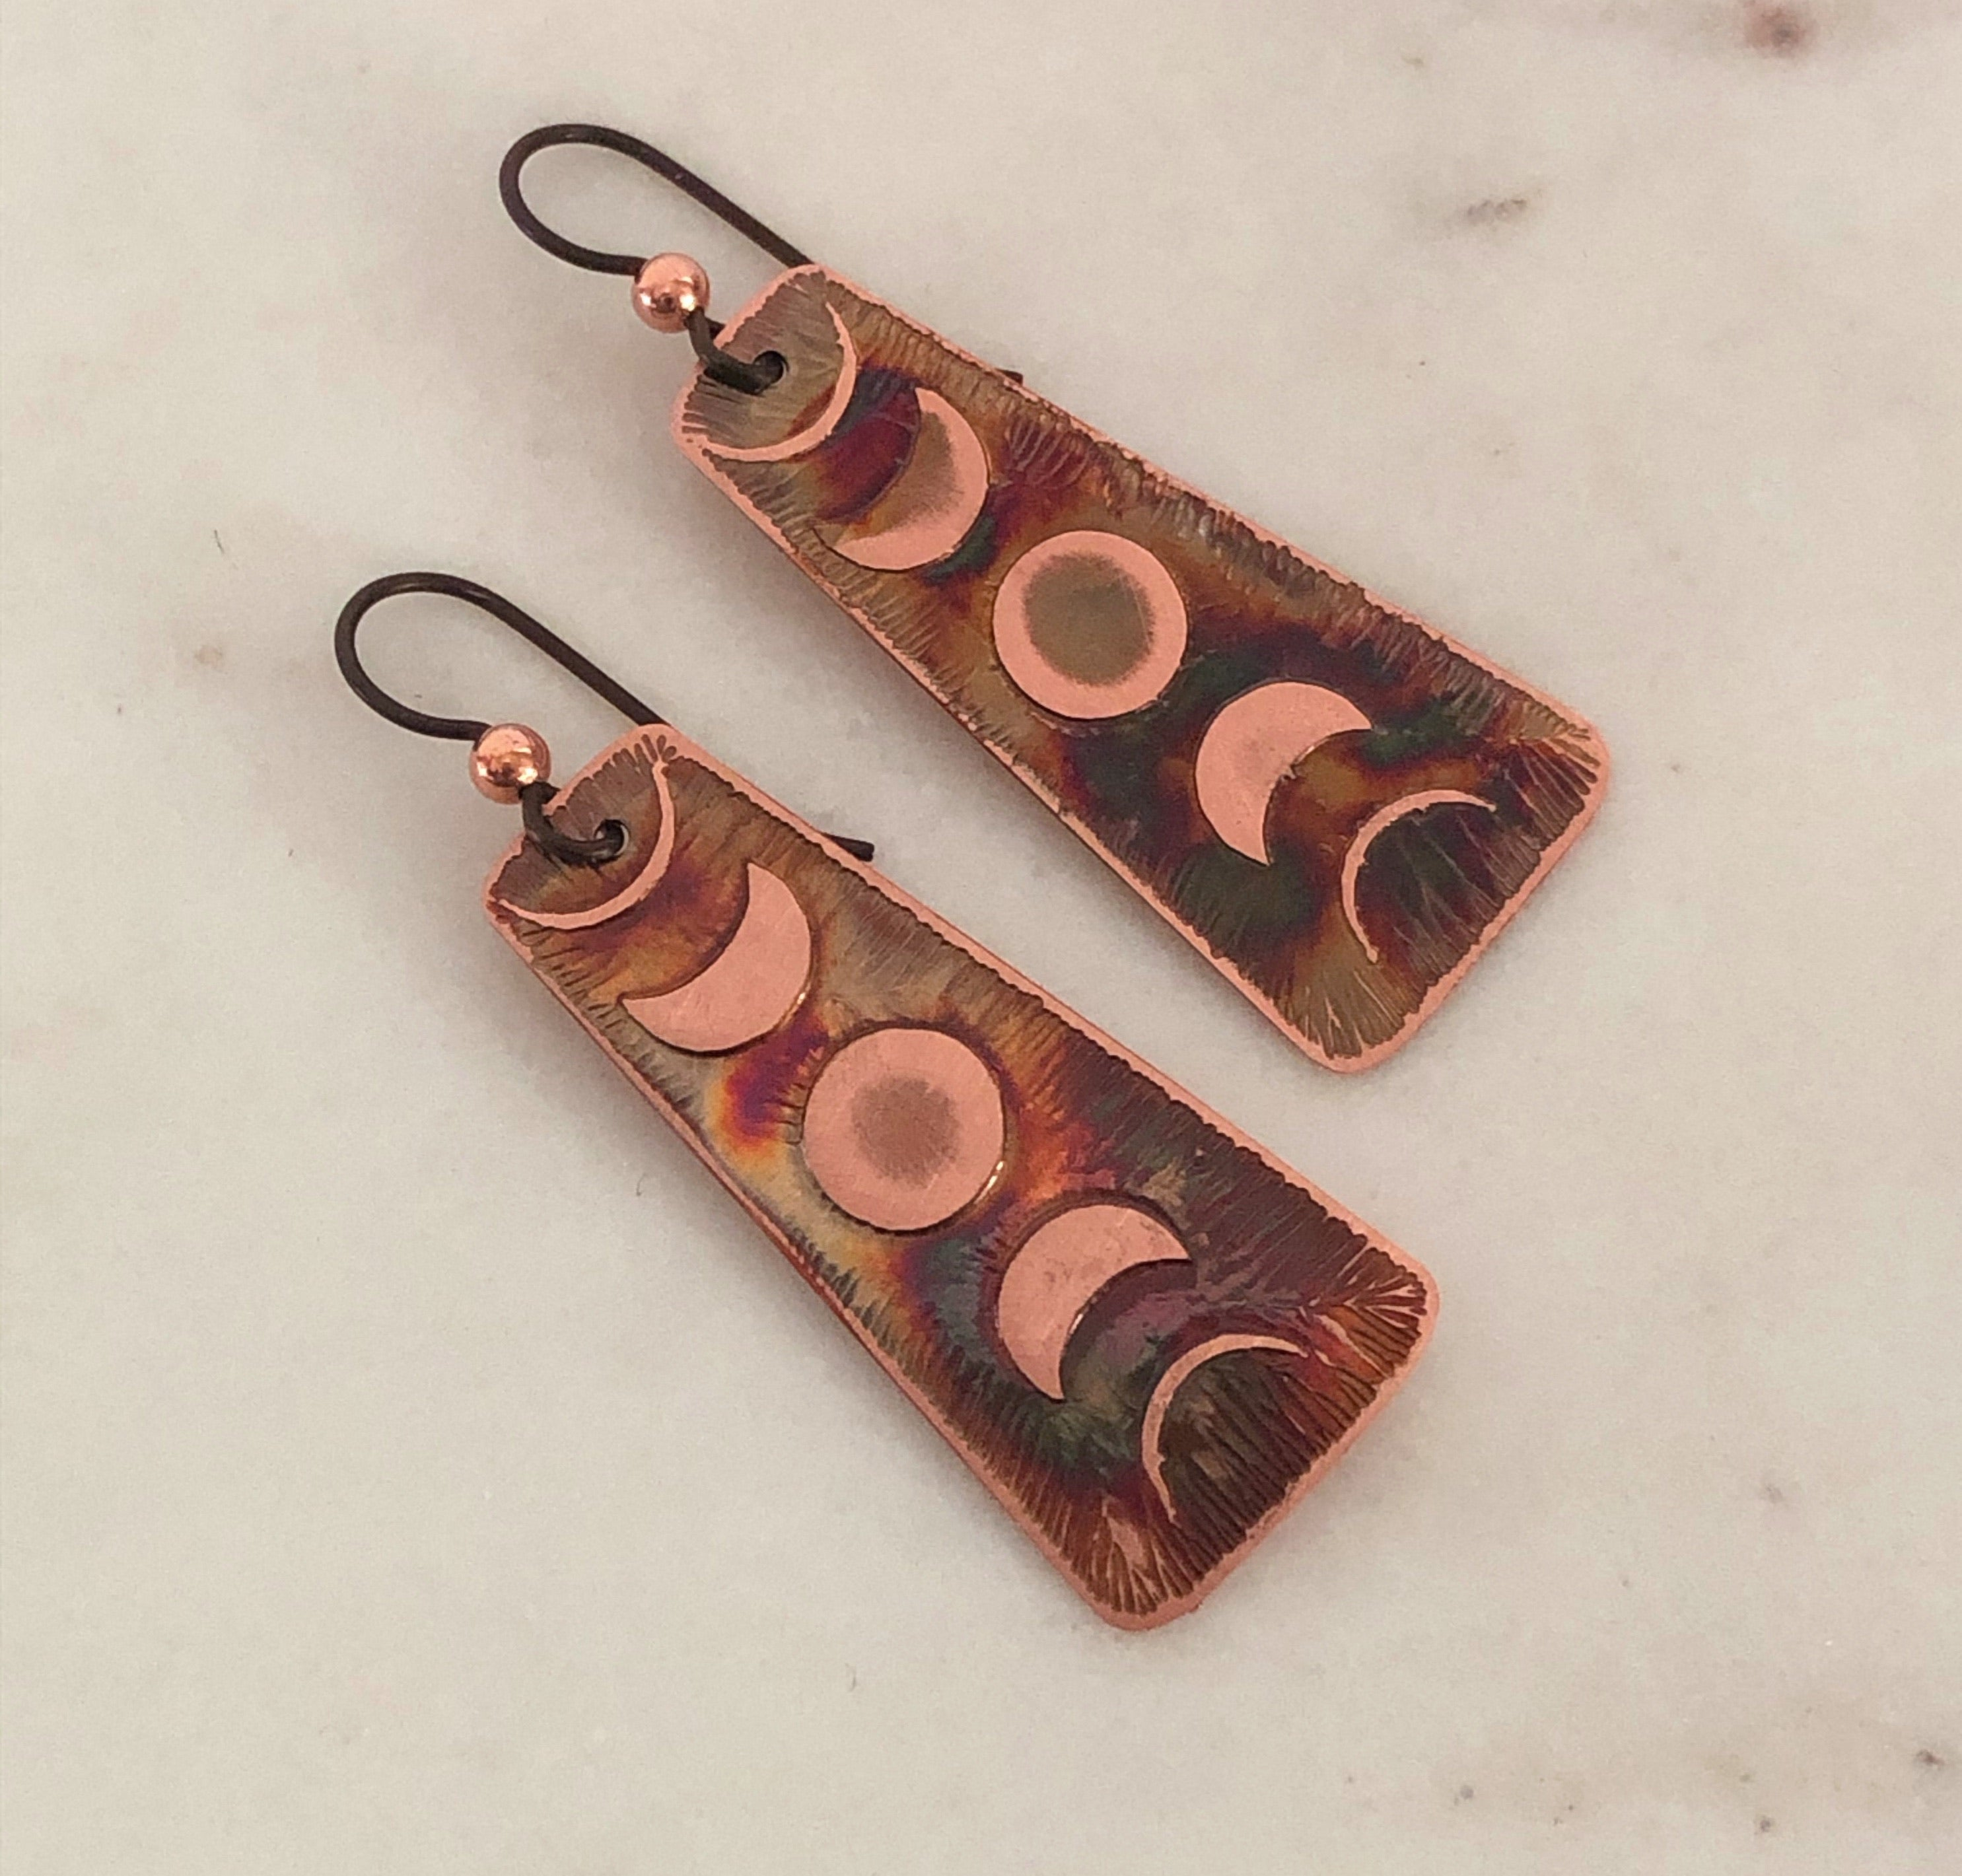 Acid etched copper moon phase earrings